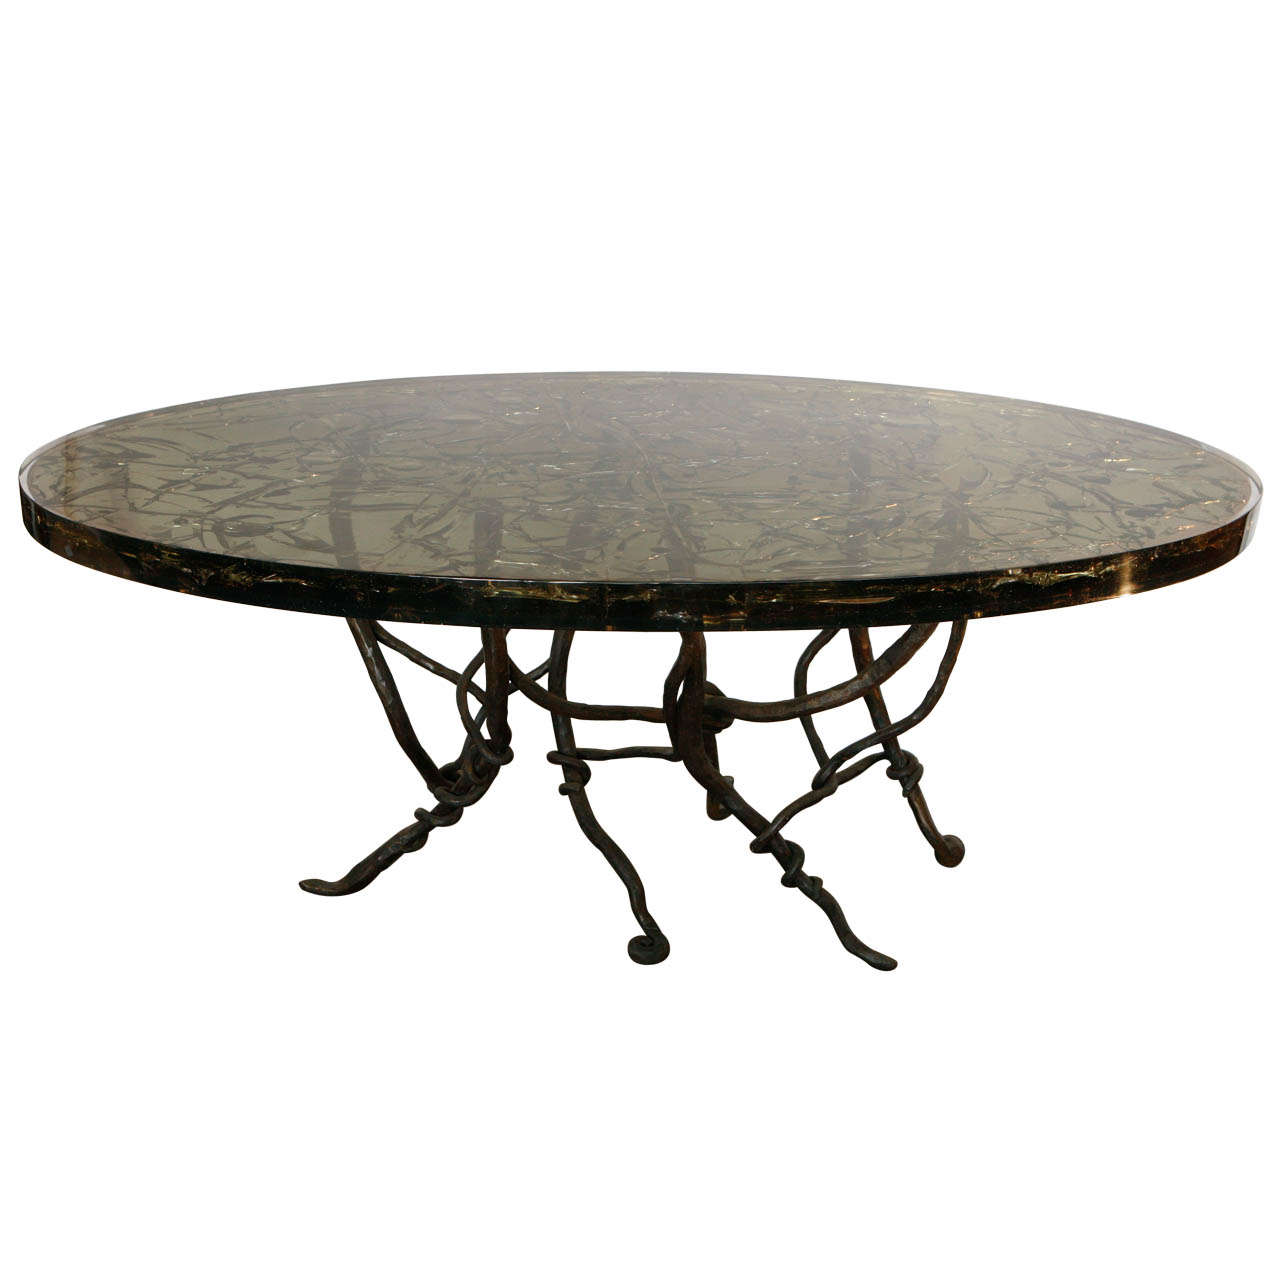 Resin Dining Table with Vined Hand Forged Base at 1stdibs : X from 1stdibs.com size 1280 x 1280 jpeg 72kB